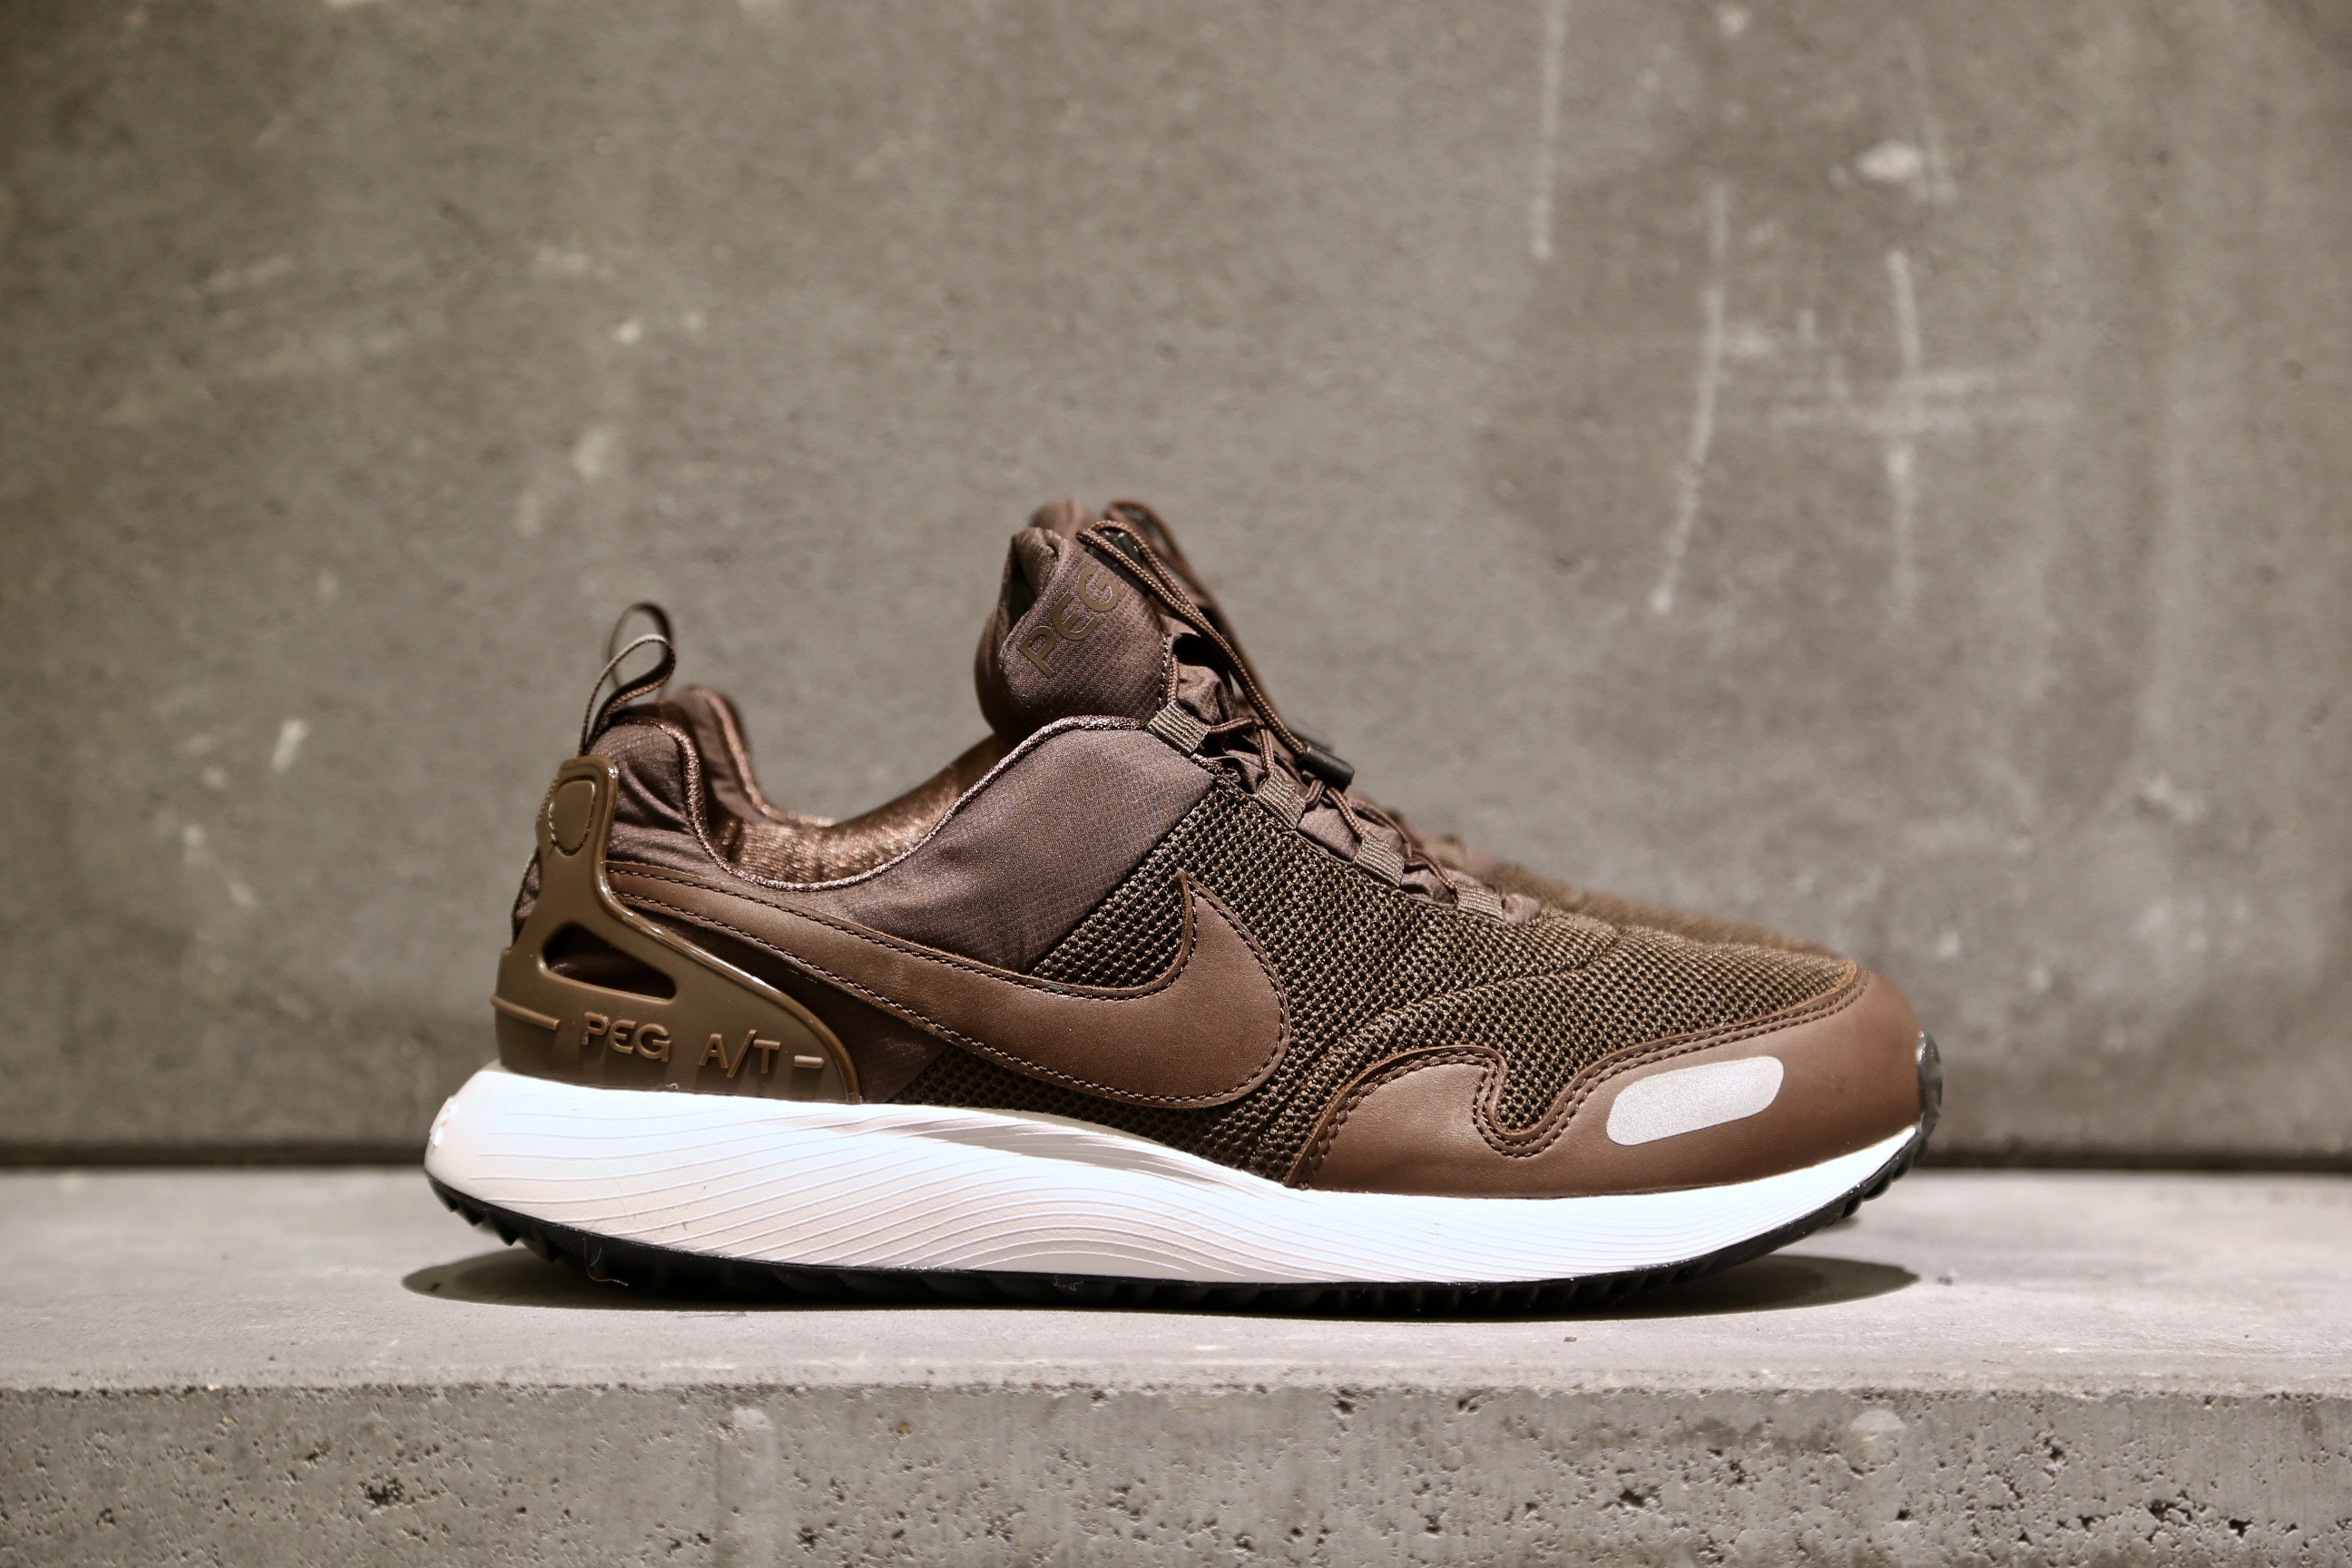 sneakers for cheap 4e6e4 4ed6c Nike Air Pegasus A/T PRM - Baroque Brown / Black / White